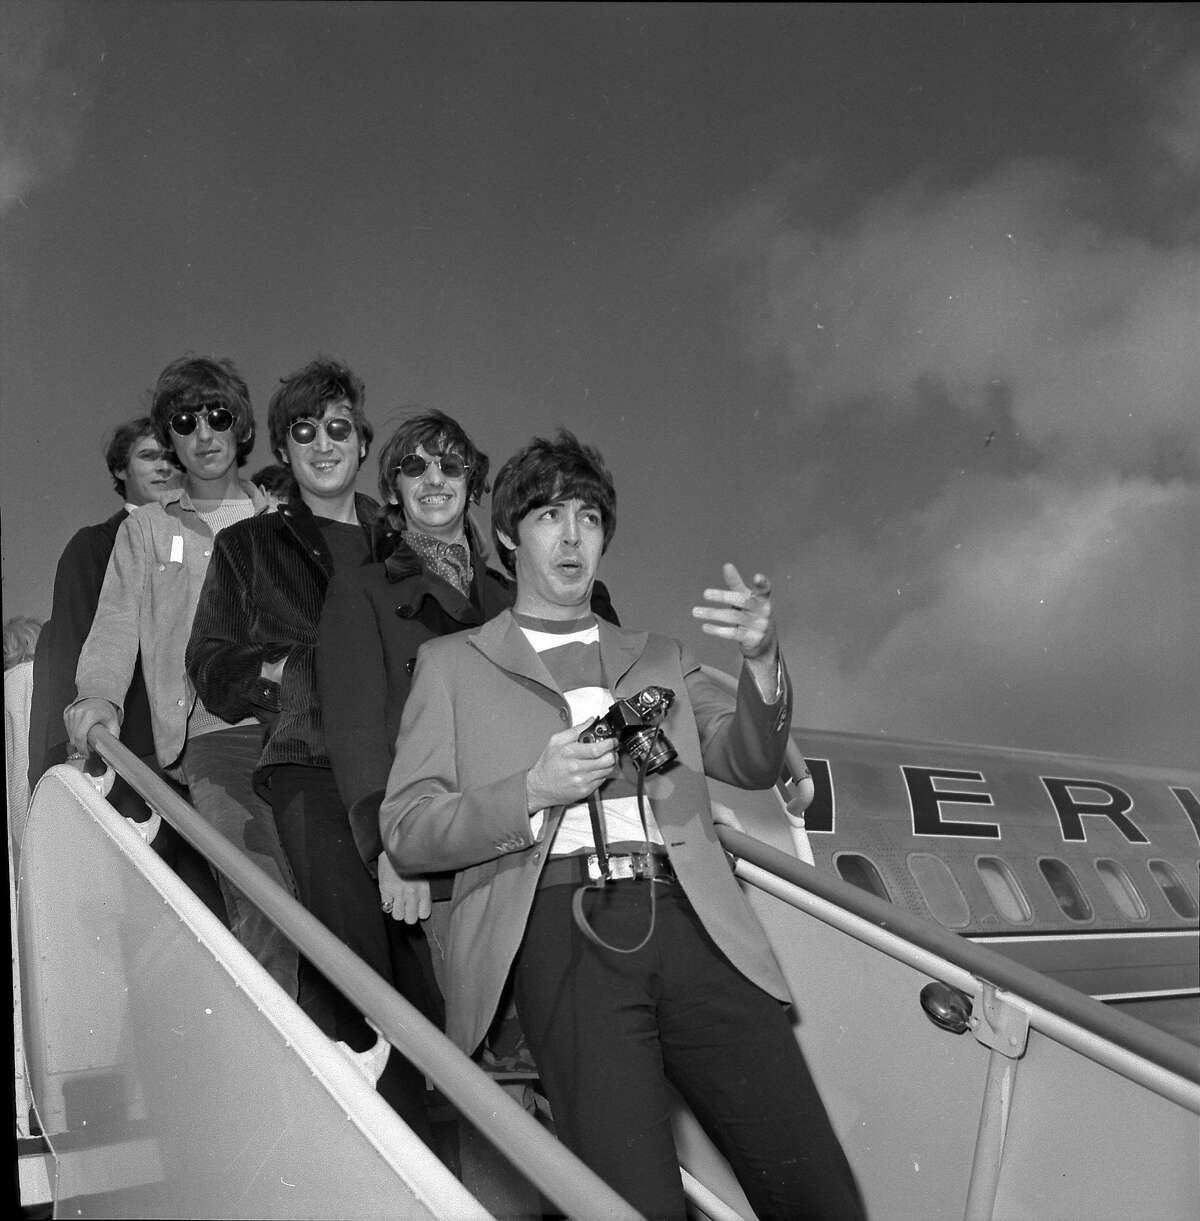 The Beatles arrive in San Francisco on August 29, 1966 for their concert at Candlestick Park. Paul McCartney, Ringo Starr, John Lennon and George Harrison are shown walking down the stairs from an airplane.